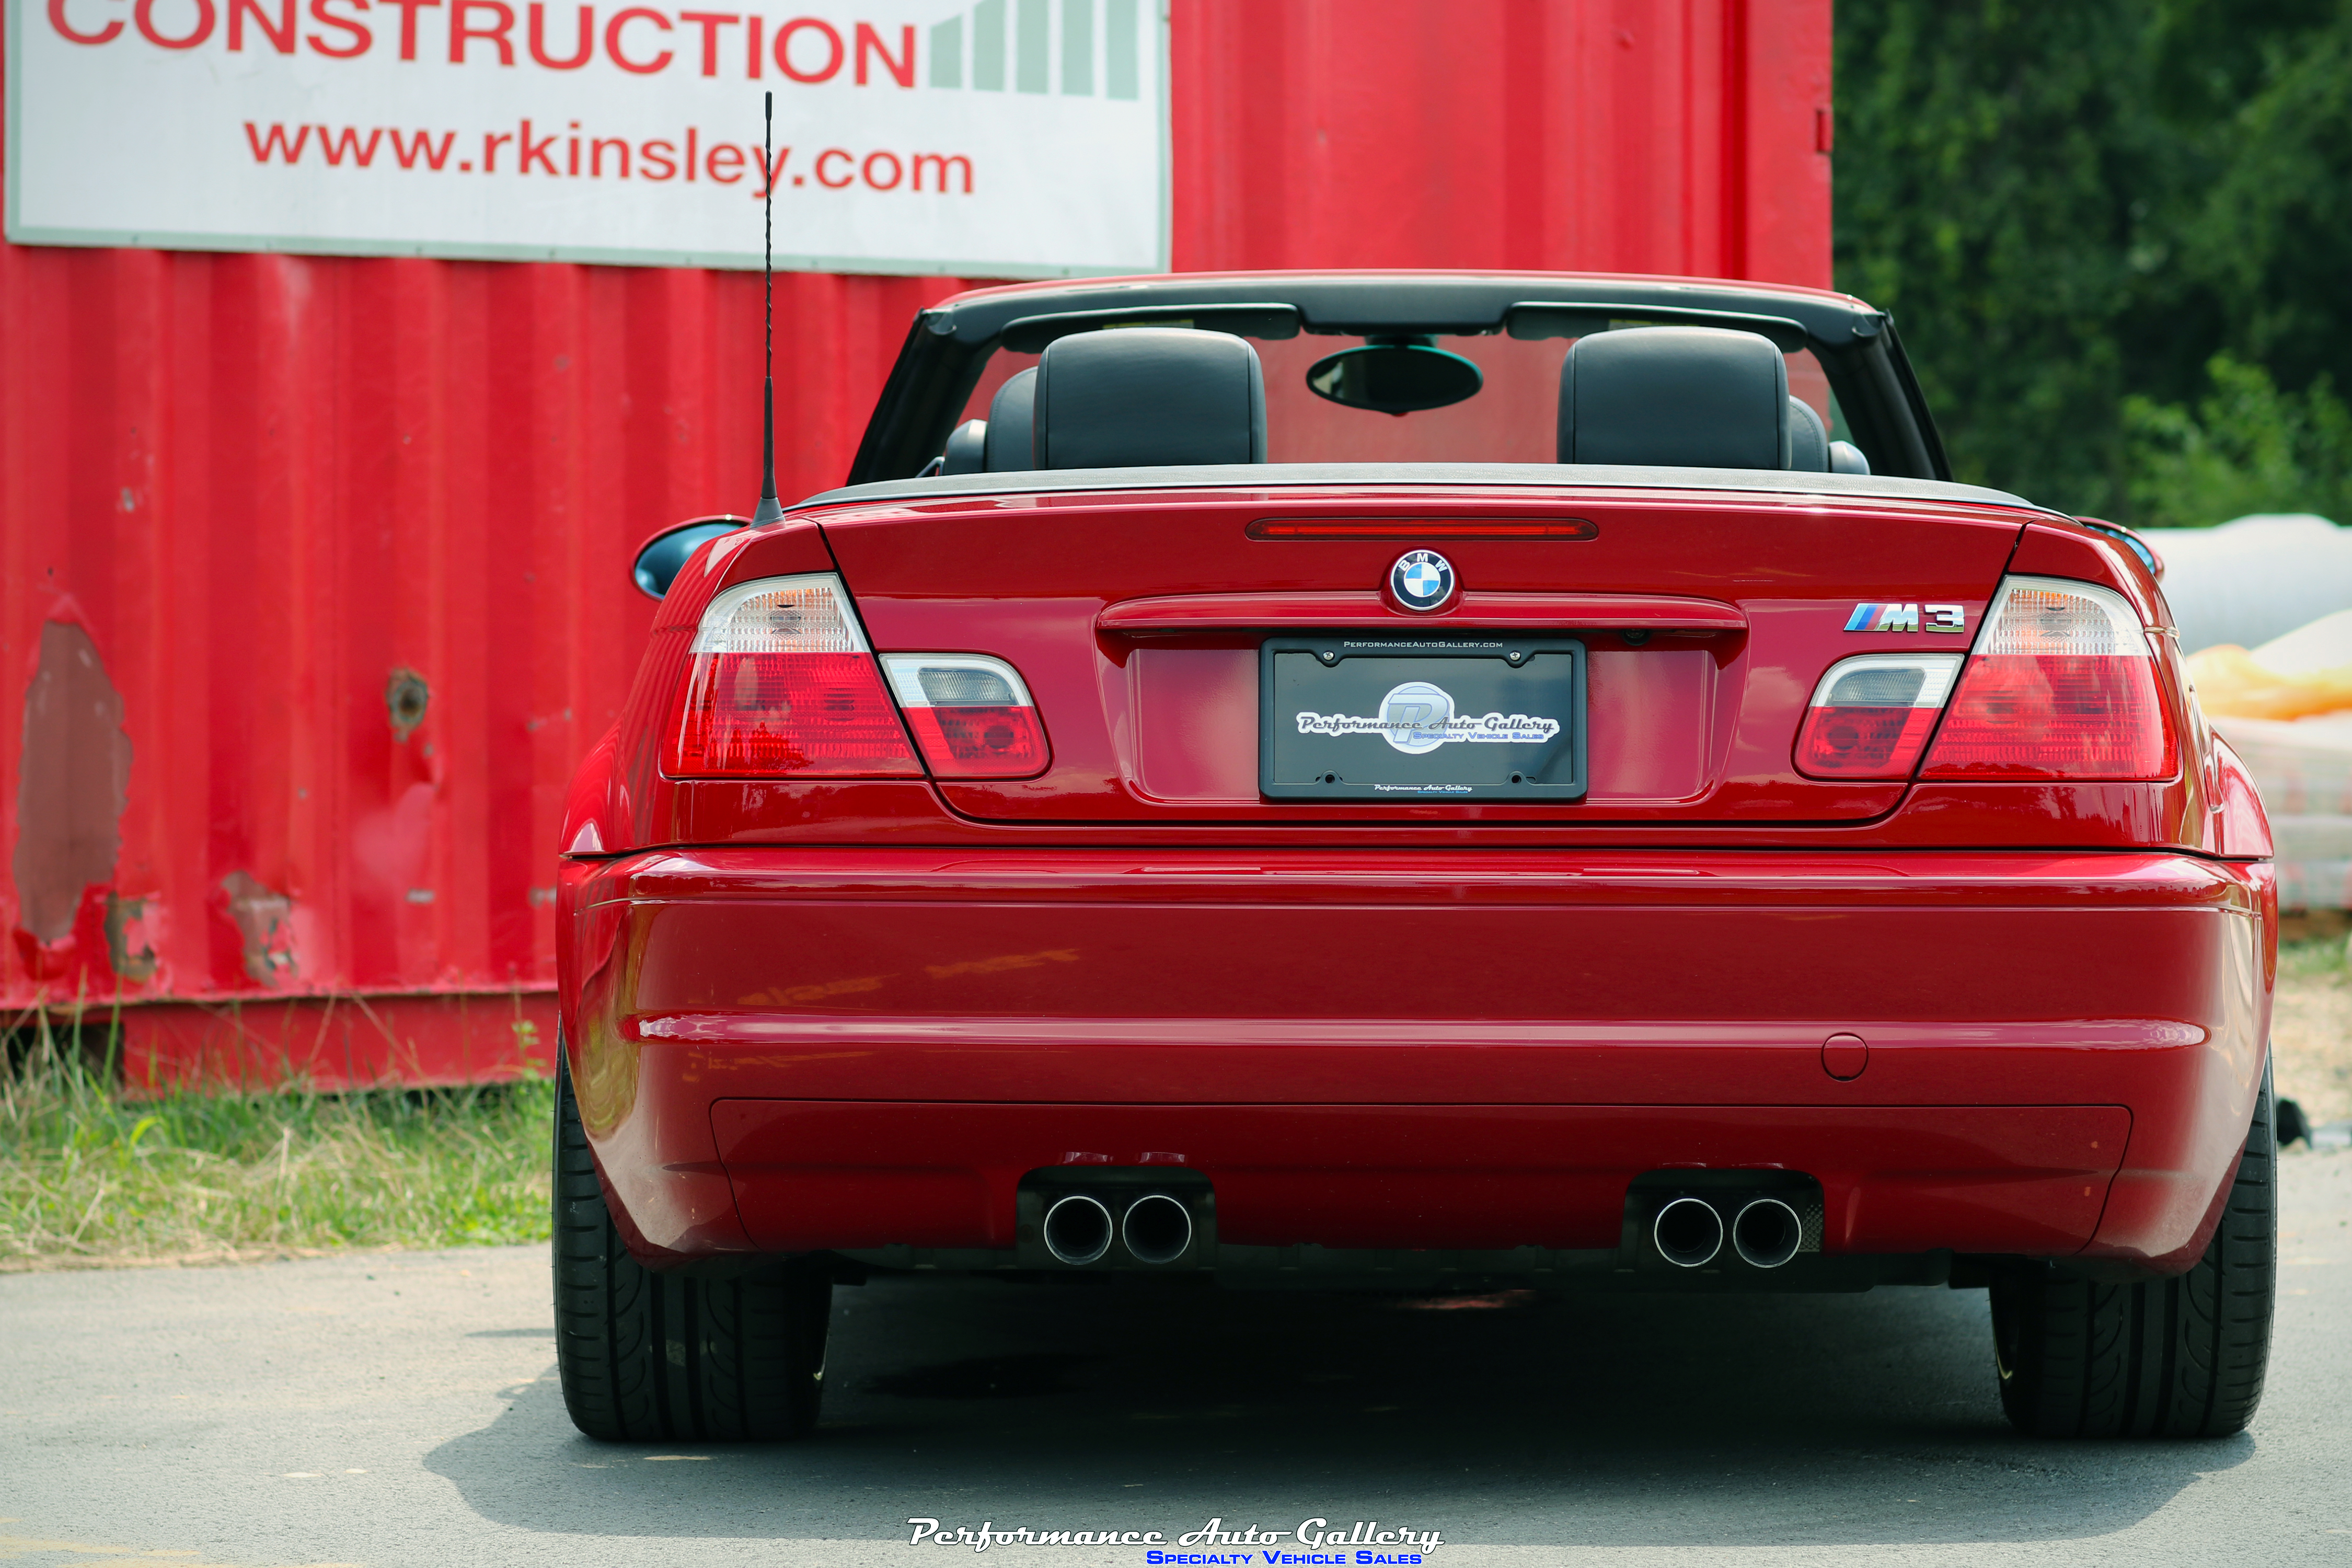 Complete album of this 2001 BMW M3 Convertible On the Site